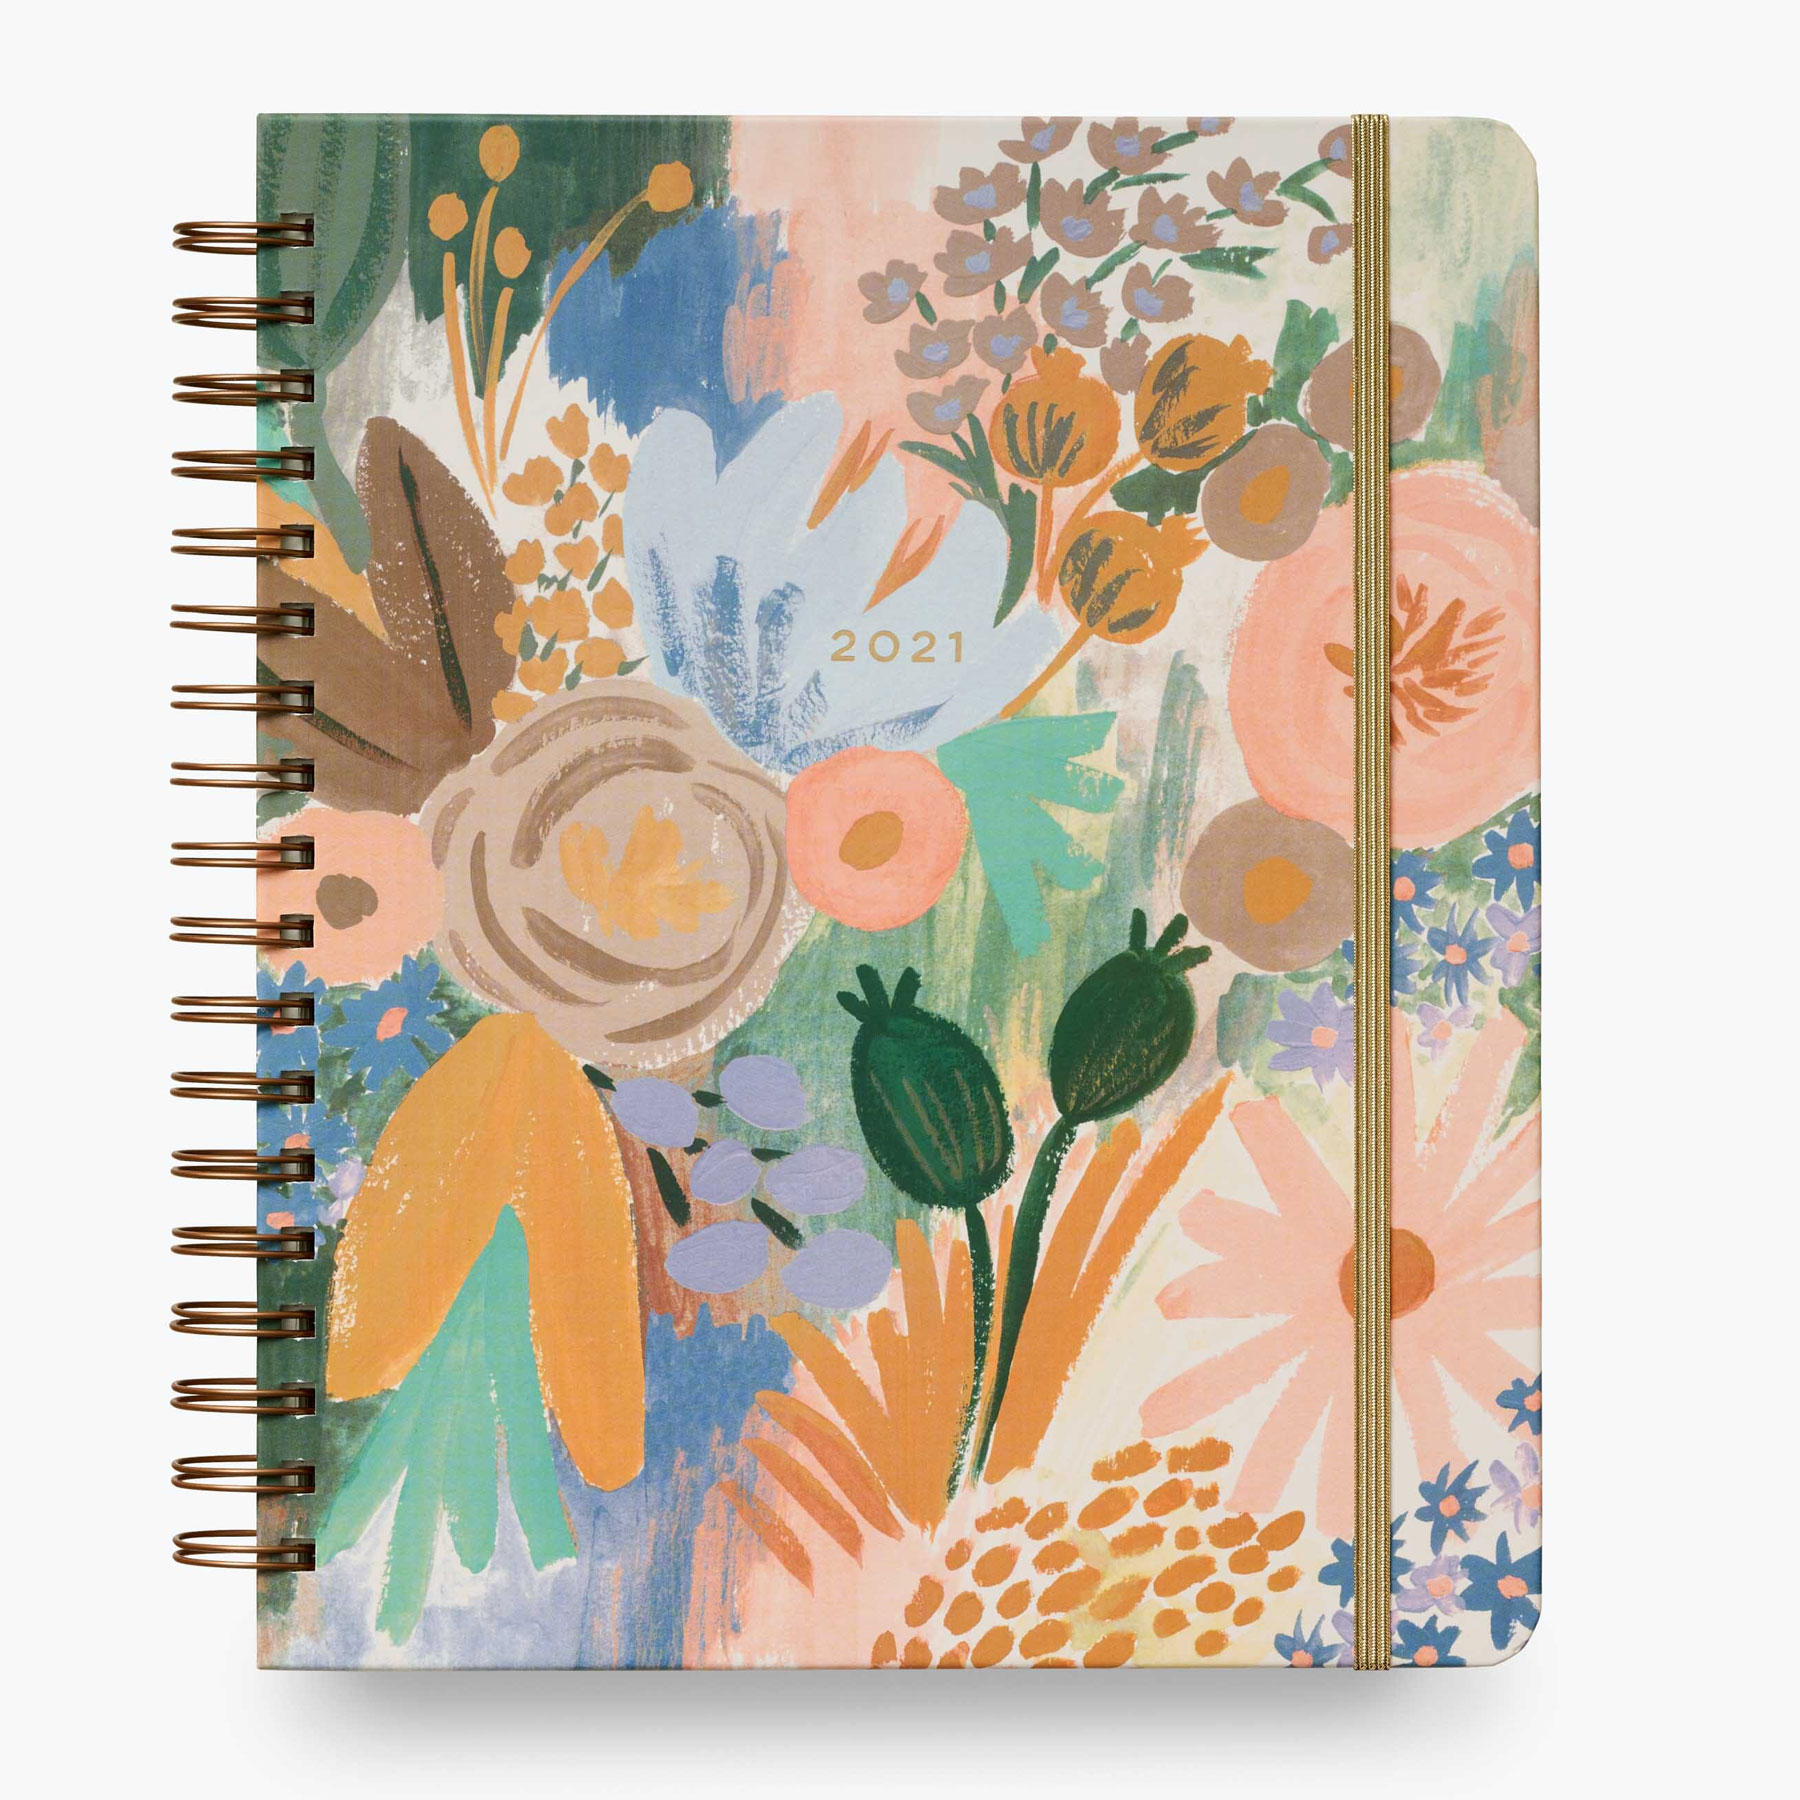 Best weekly, daily, monthly planners - Rifle Paper Co. 2021 17-Month Large Planner